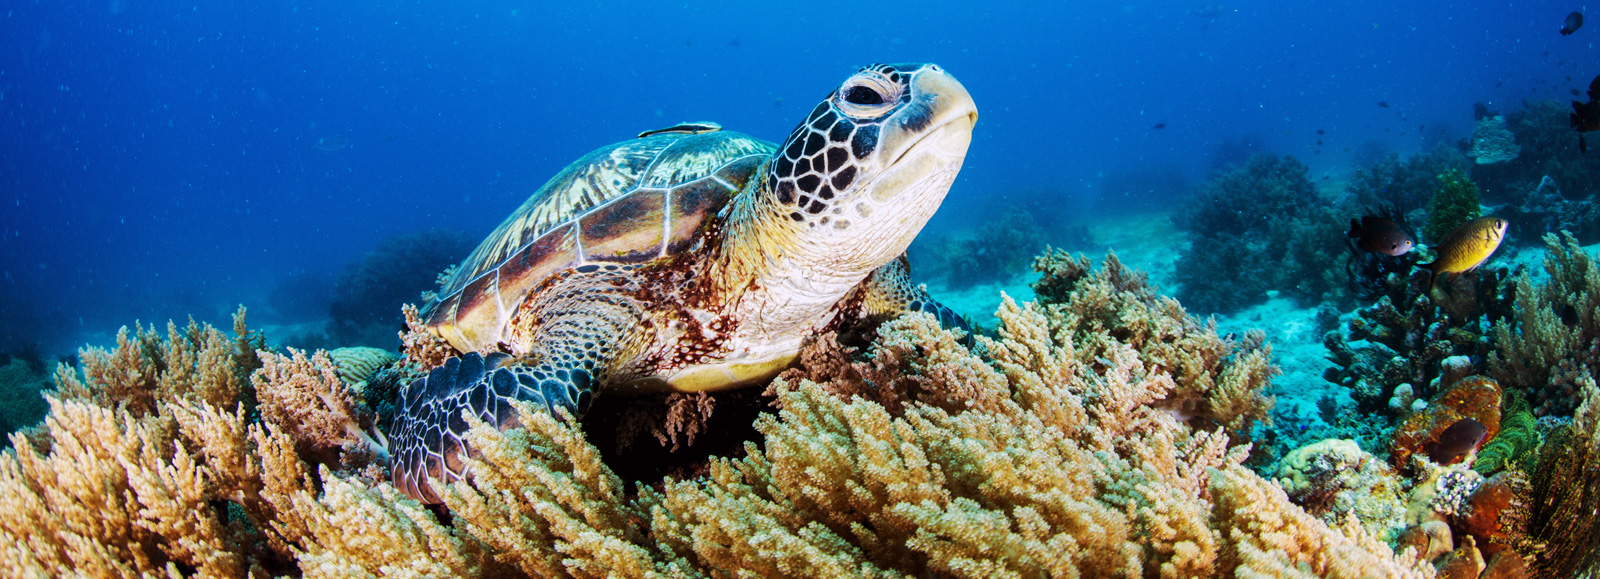 Eco-Friendly - sea turtle swimming among coral